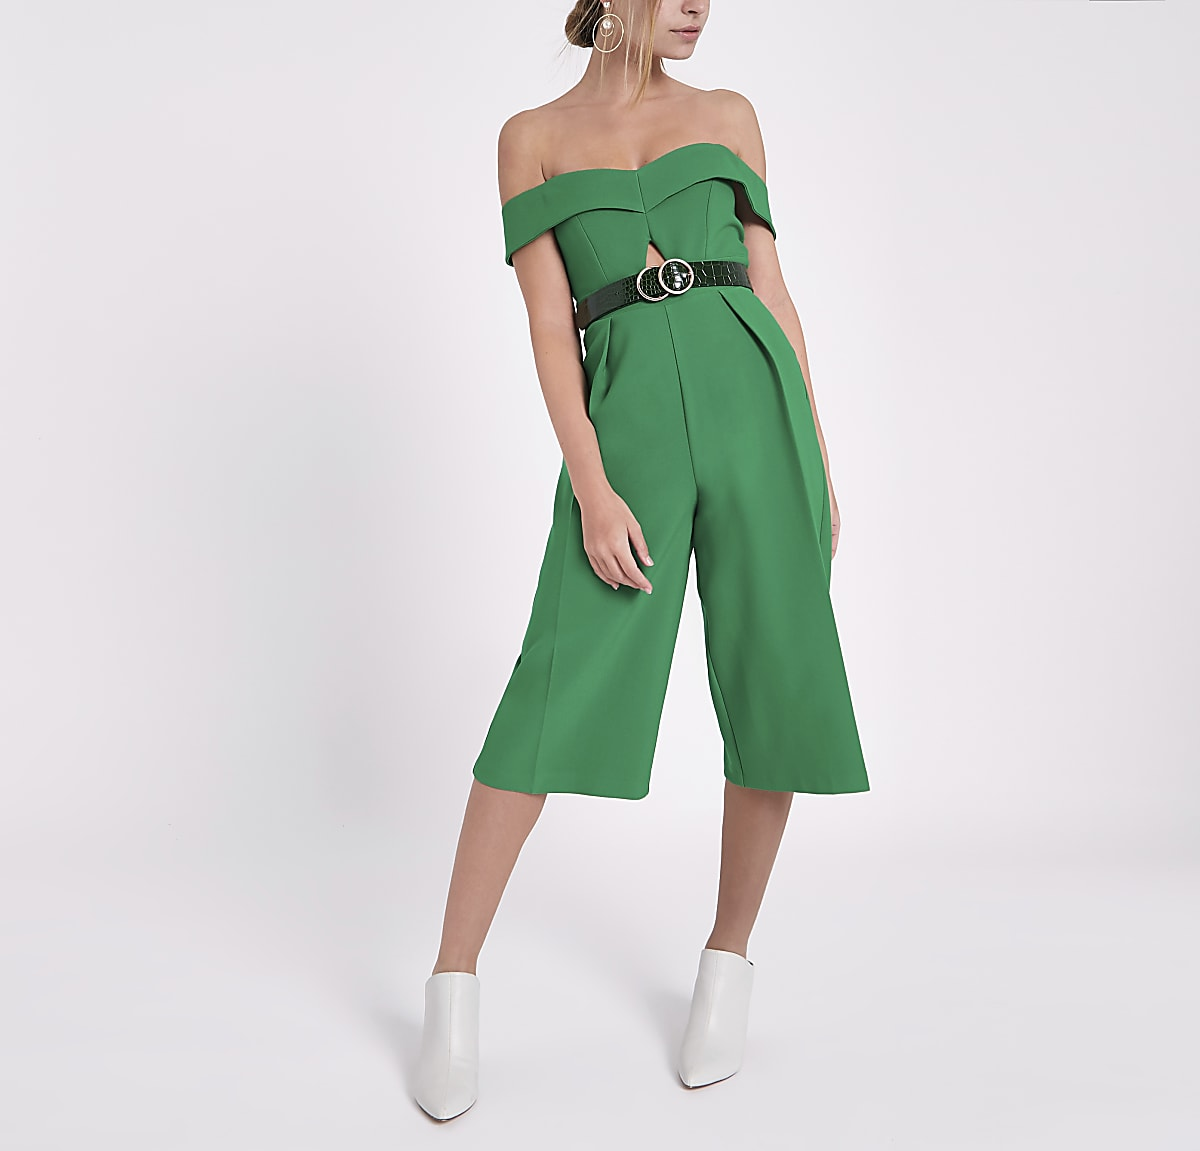 d3b05c0187d Petite green bardot cut out culotte jumpsuit - Jumpsuits - Playsuits    Jumpsuits - women